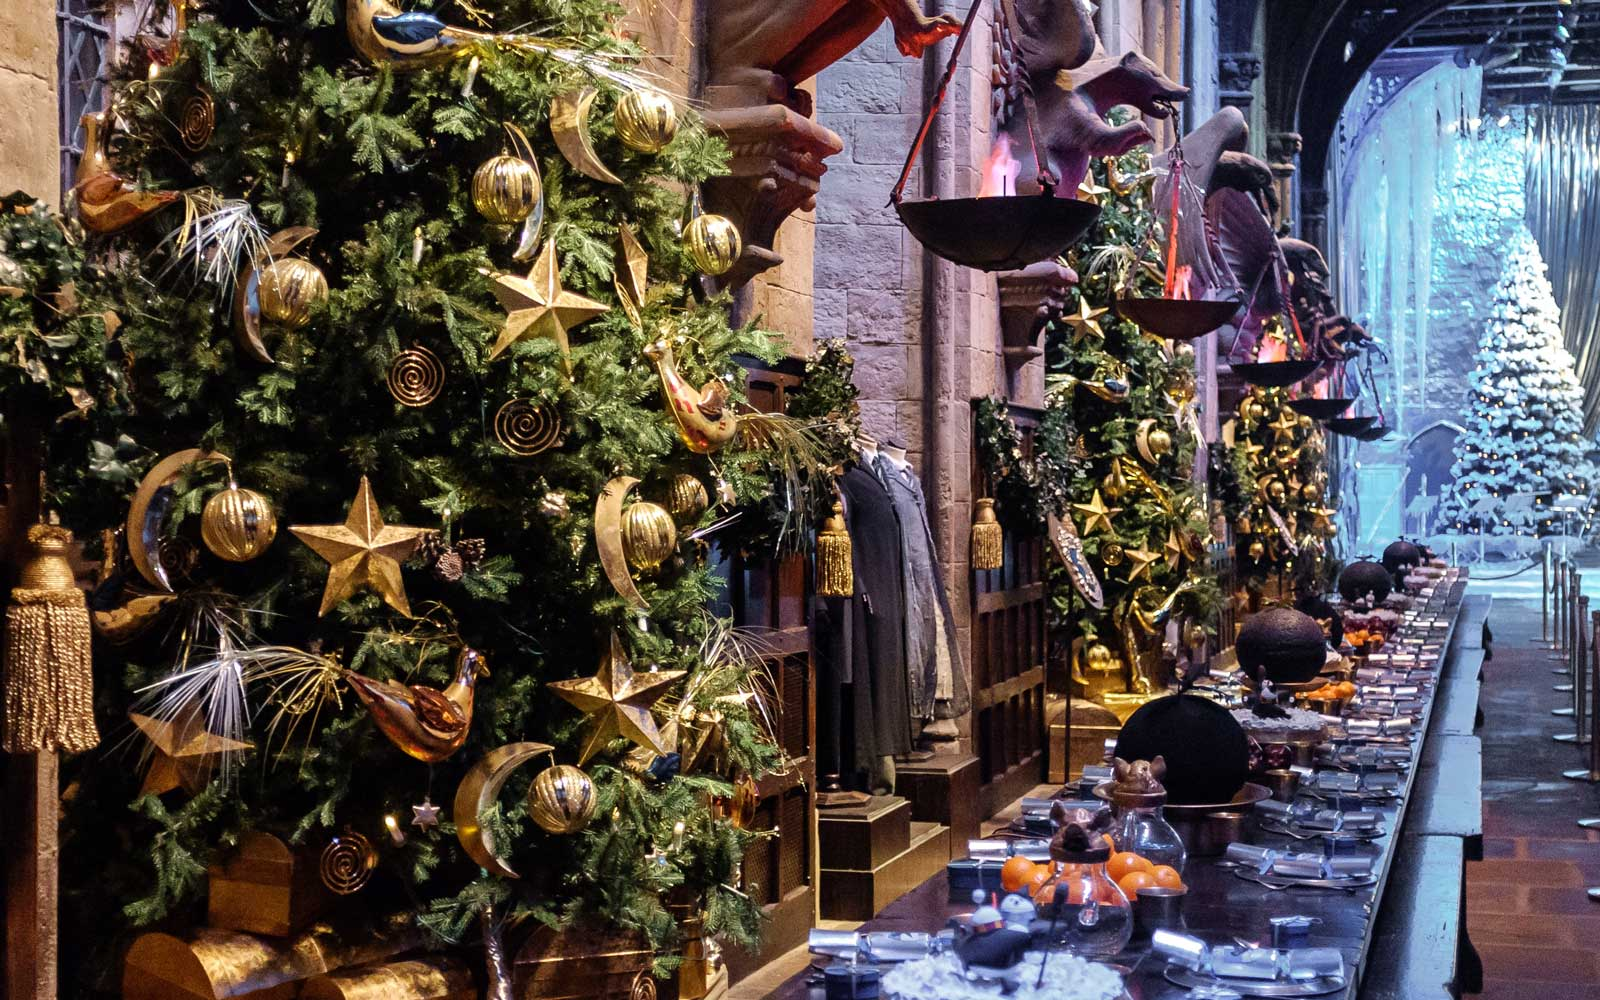 Harry Potter Fans Can Enjoy a Magical Christmas Dinner at Hogwarts Again This Year